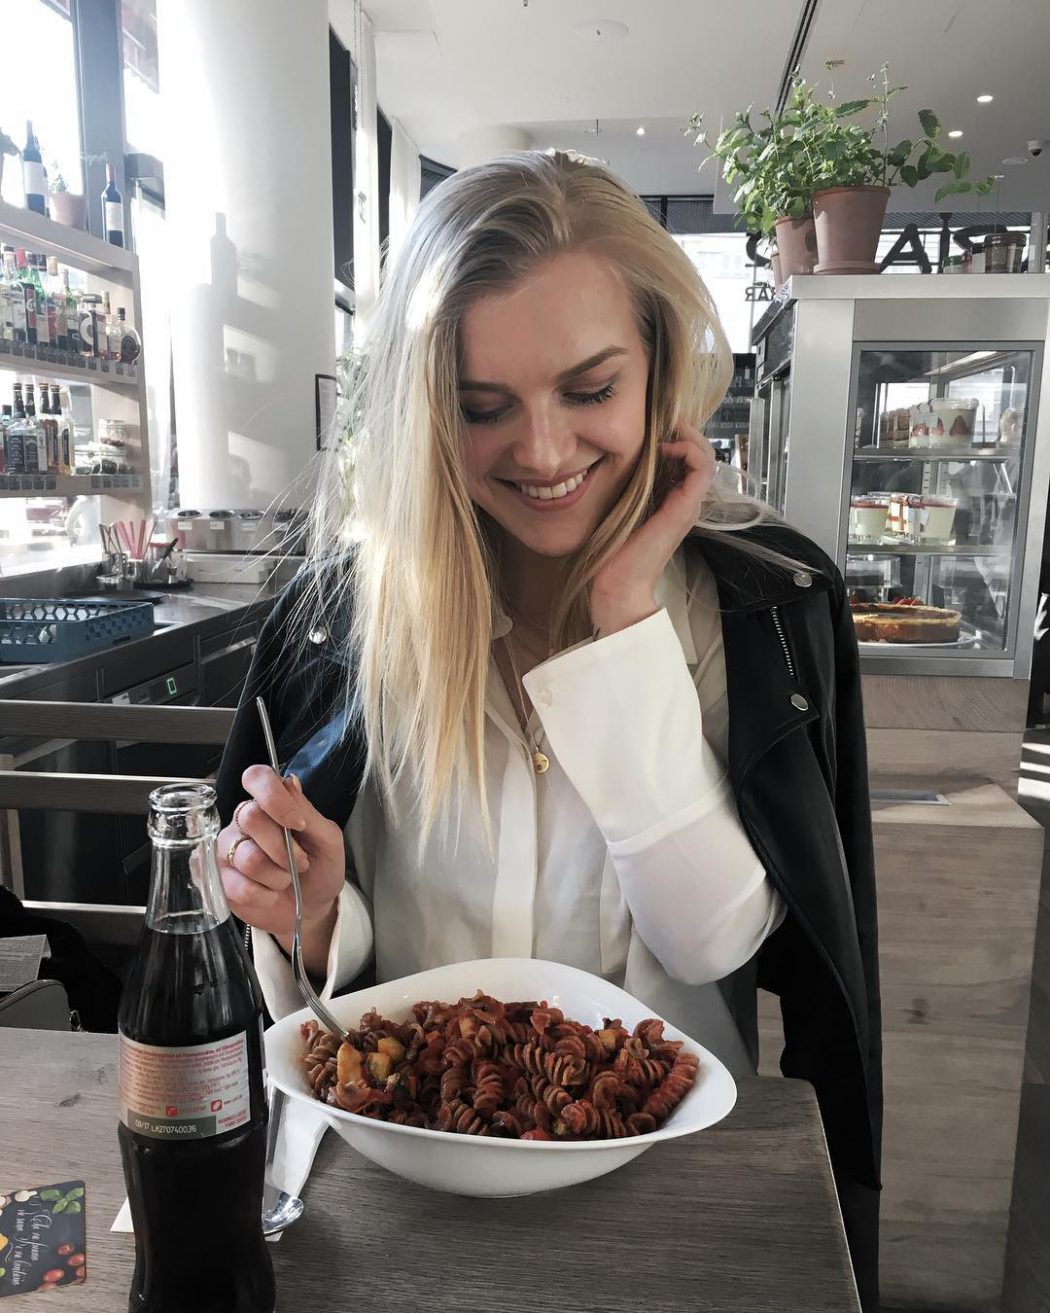 The happiest when I got food Yesterdays dinner situation whellip